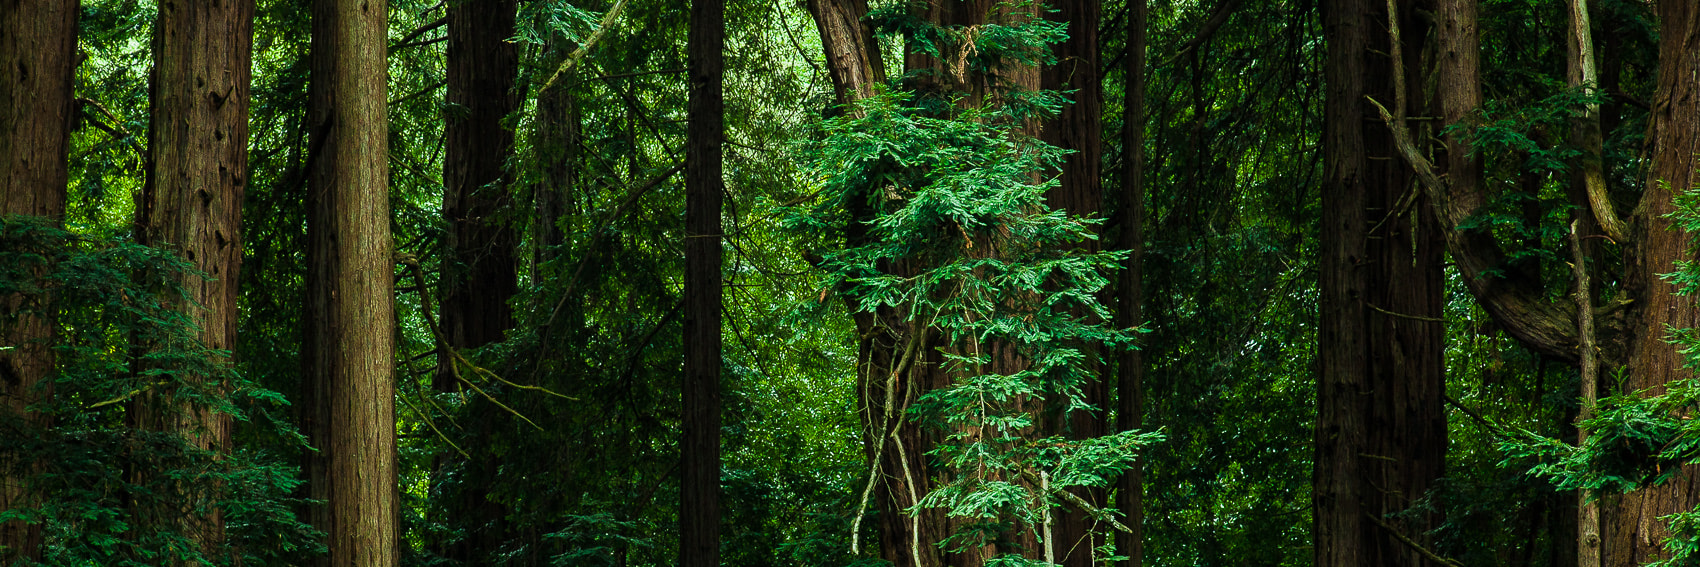 Photograph Woods by Mike Wiacek on 500px